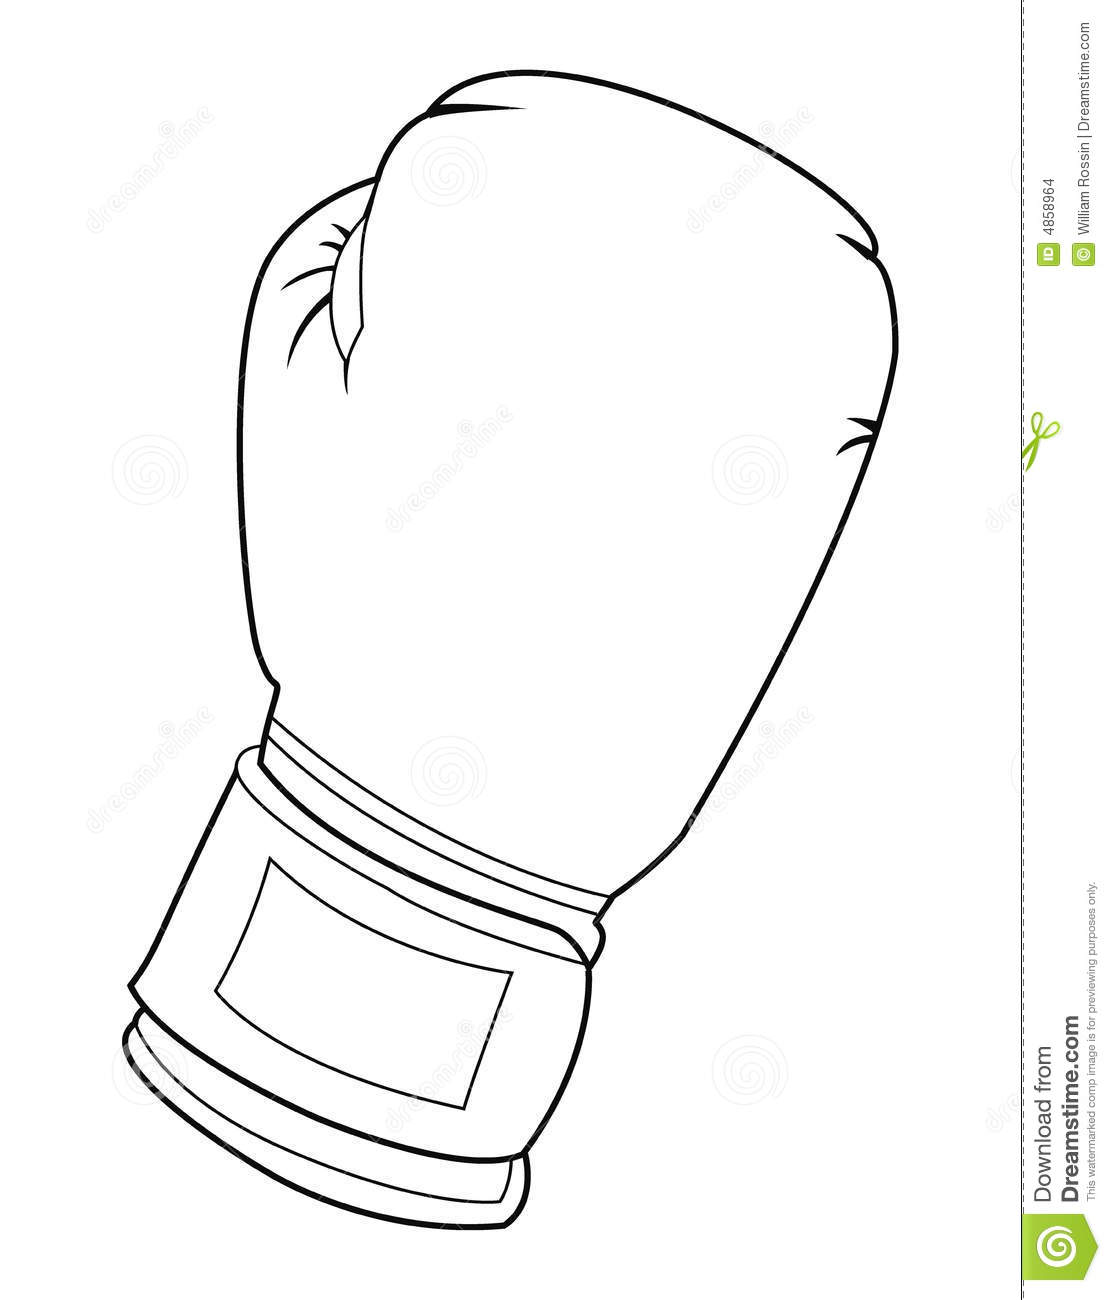 Black And White Boxing Glove Stock Images - Image: 4858964